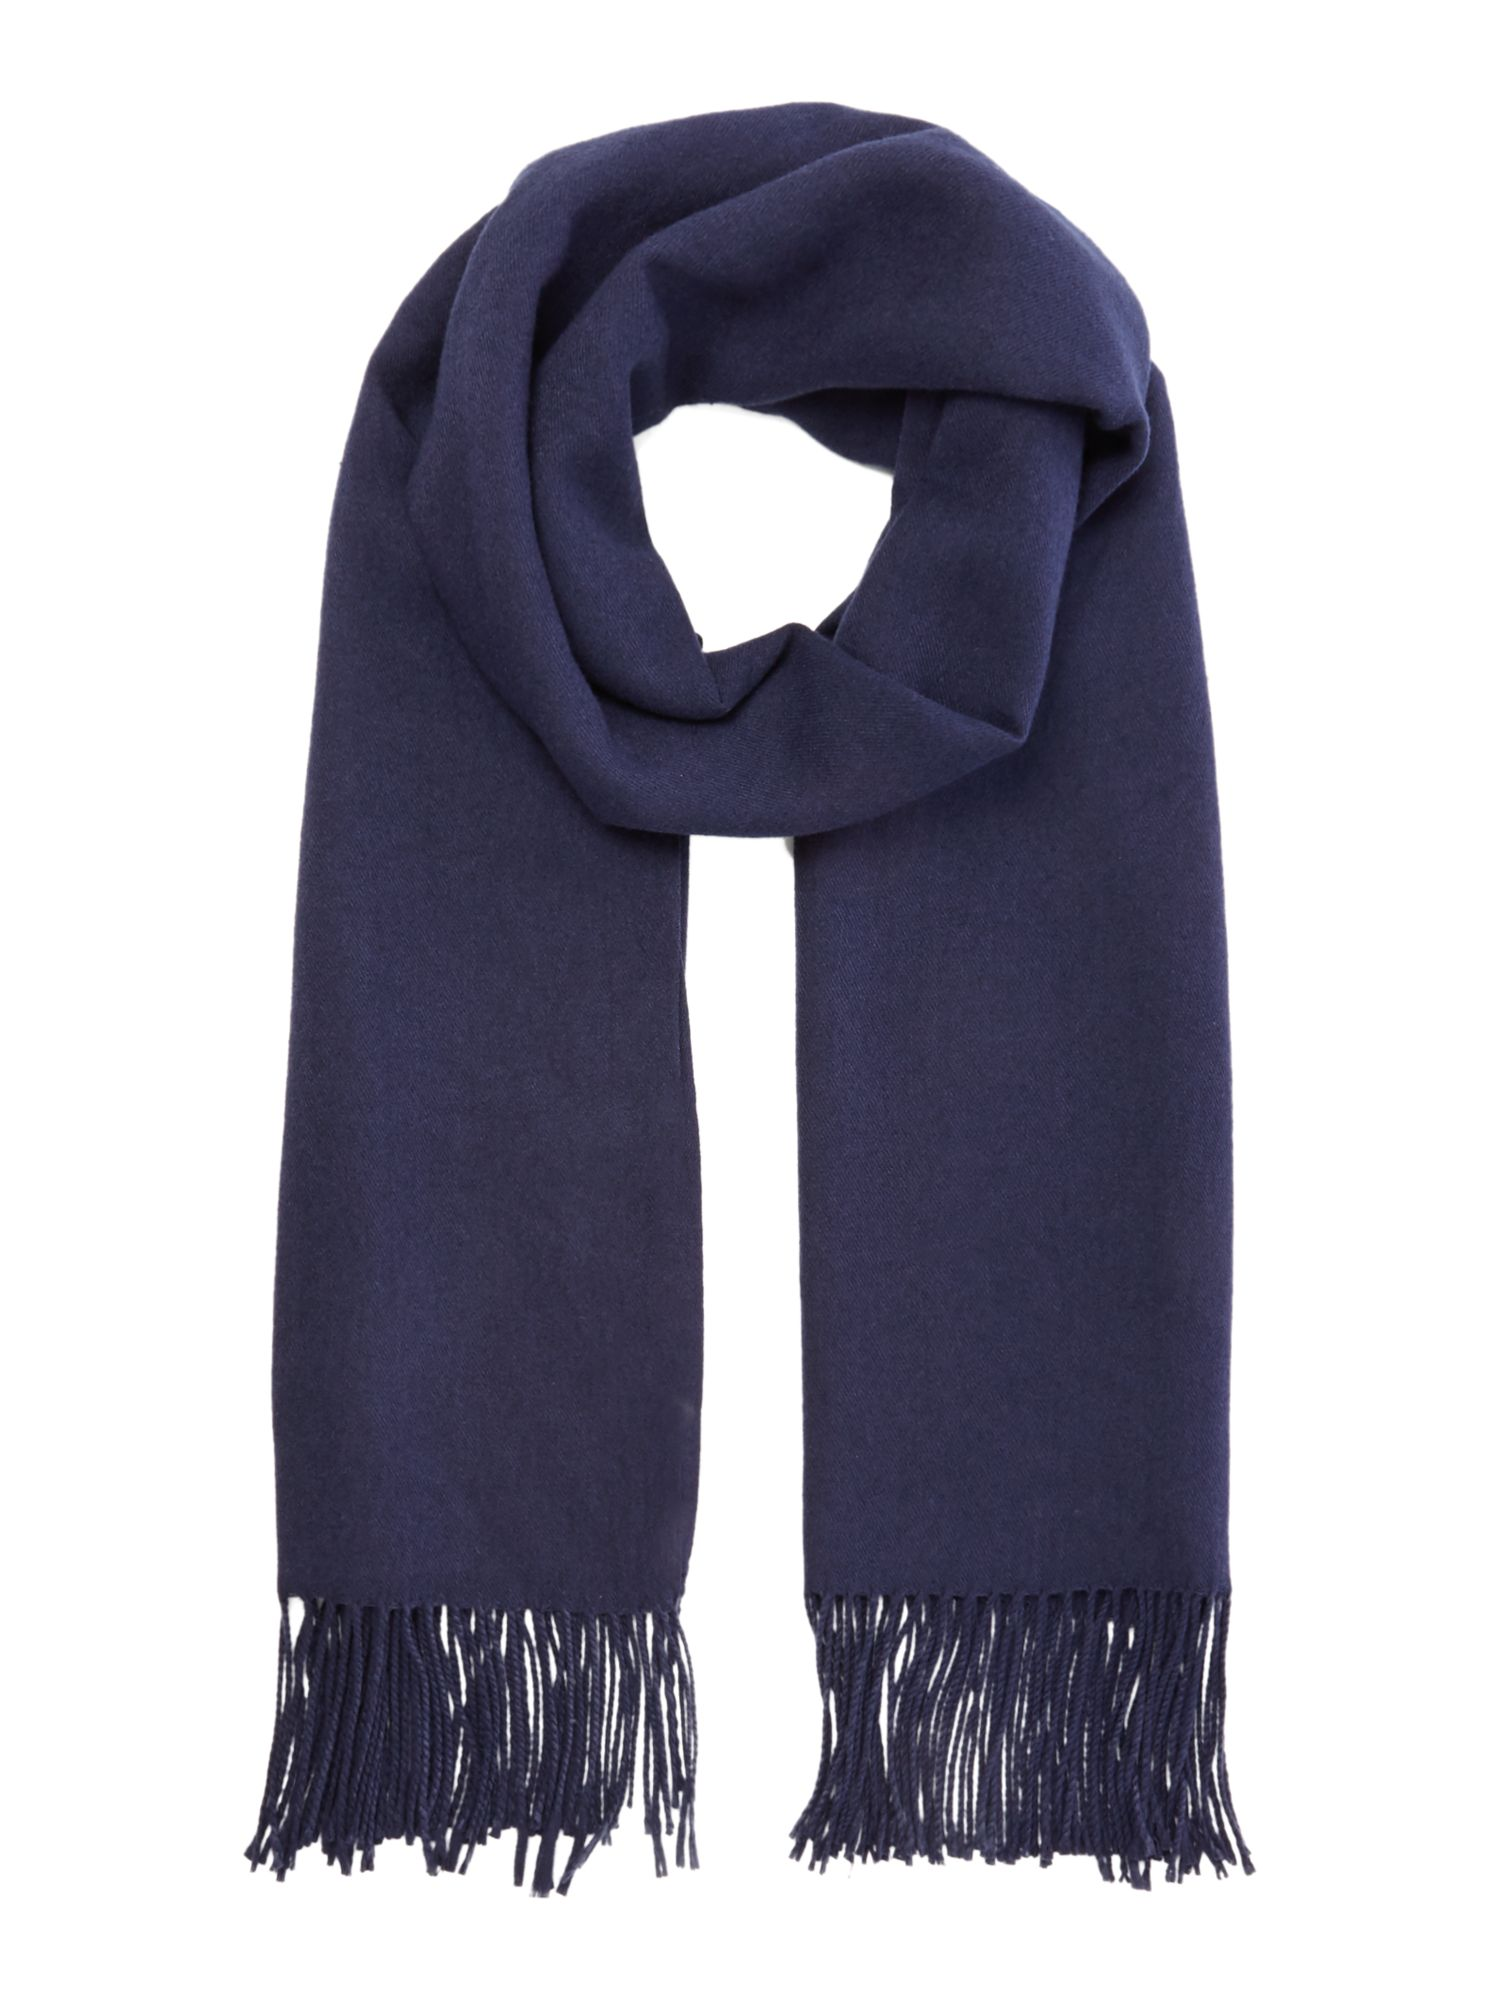 Suzanne Bettley Soft large shawl, Blue